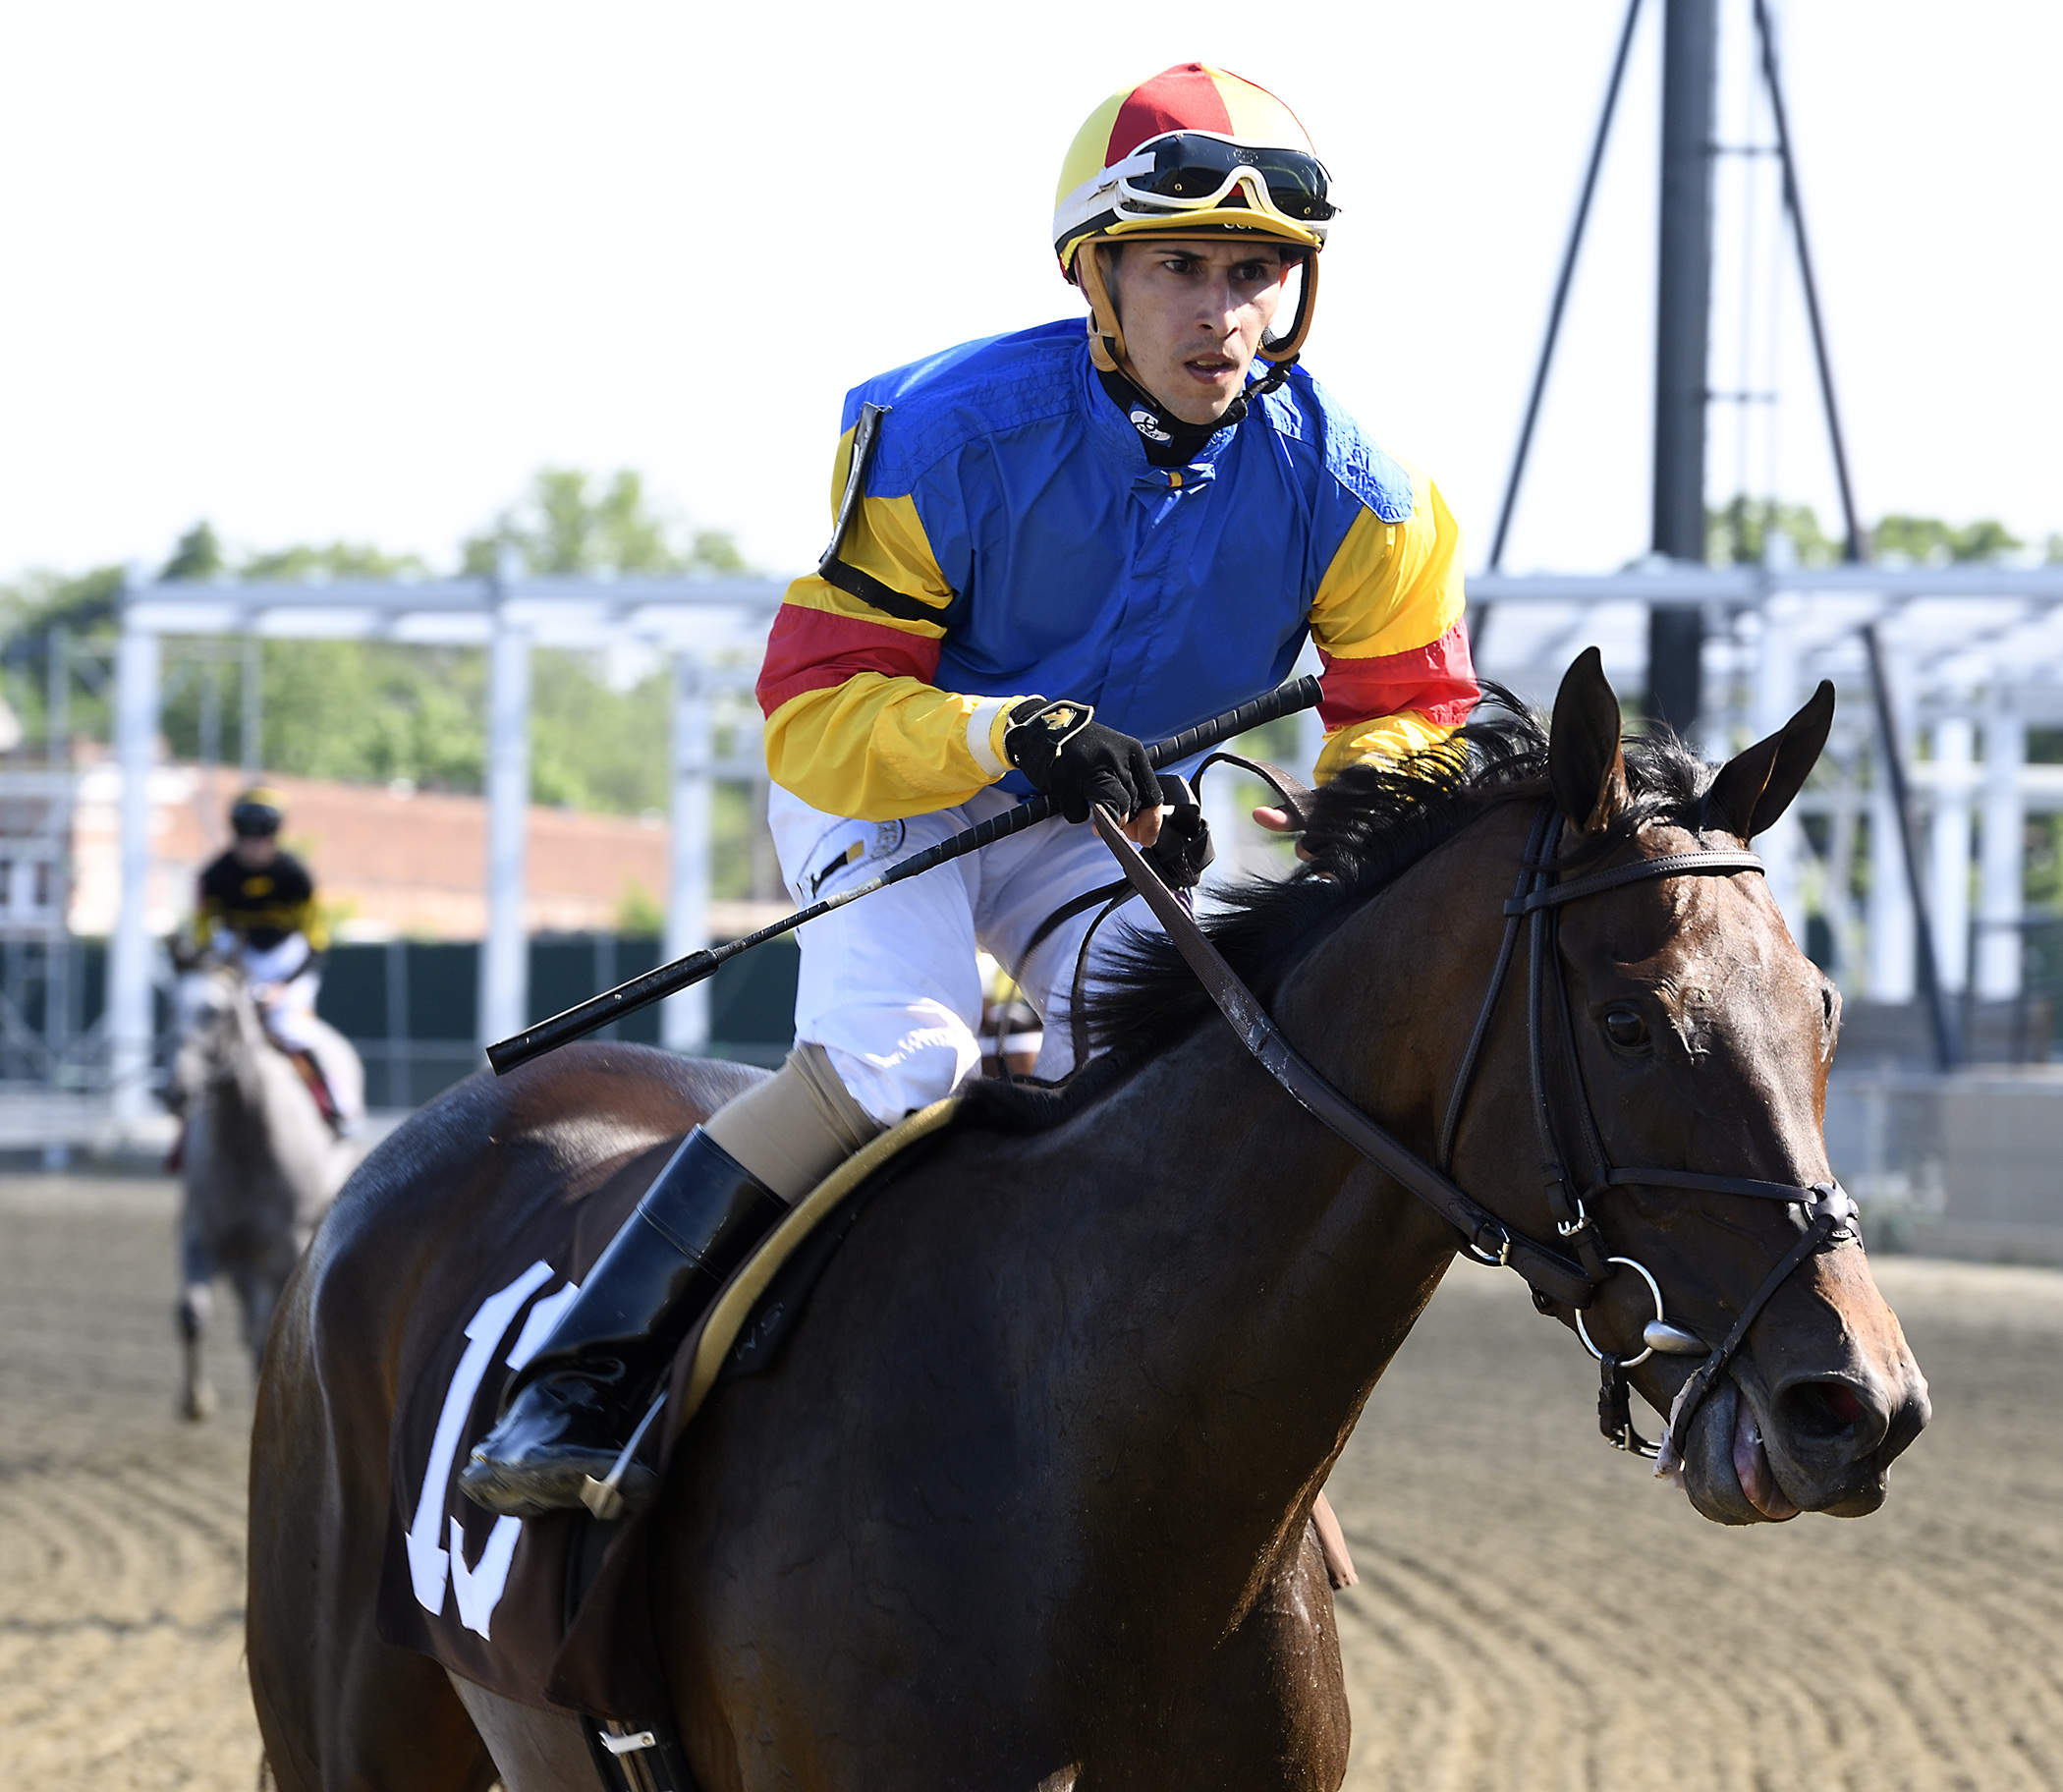 Jockey Alex Cintron was atop Queen Caroline in the June 25th Nellie Mae Cox Stakes. Photo by Jim McCue.